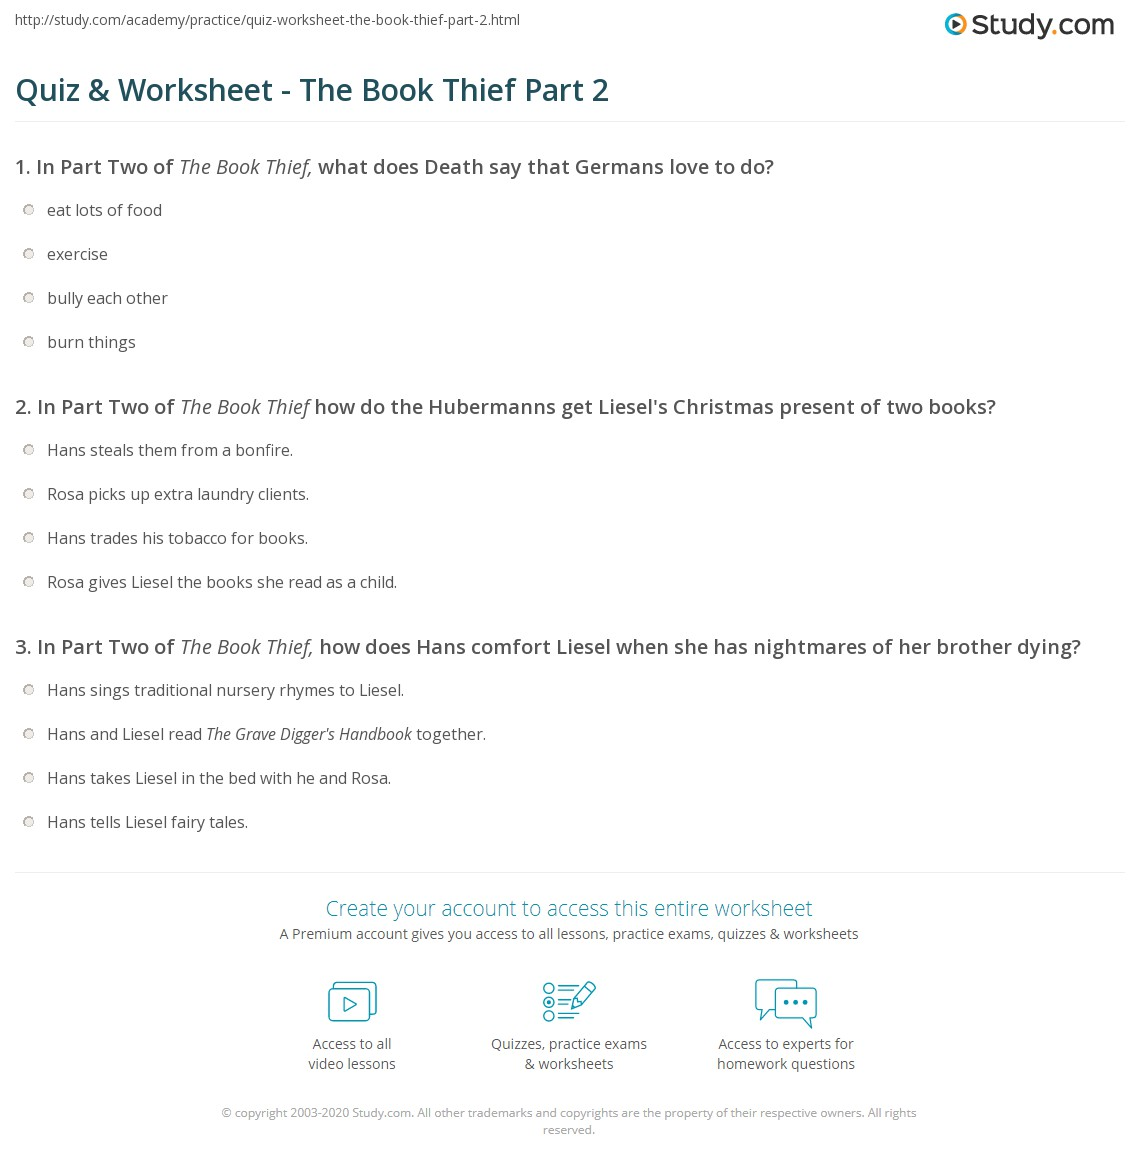 https://study.com/academy/practice/quiz-worksheet-the-book-thief-part-2.jpg